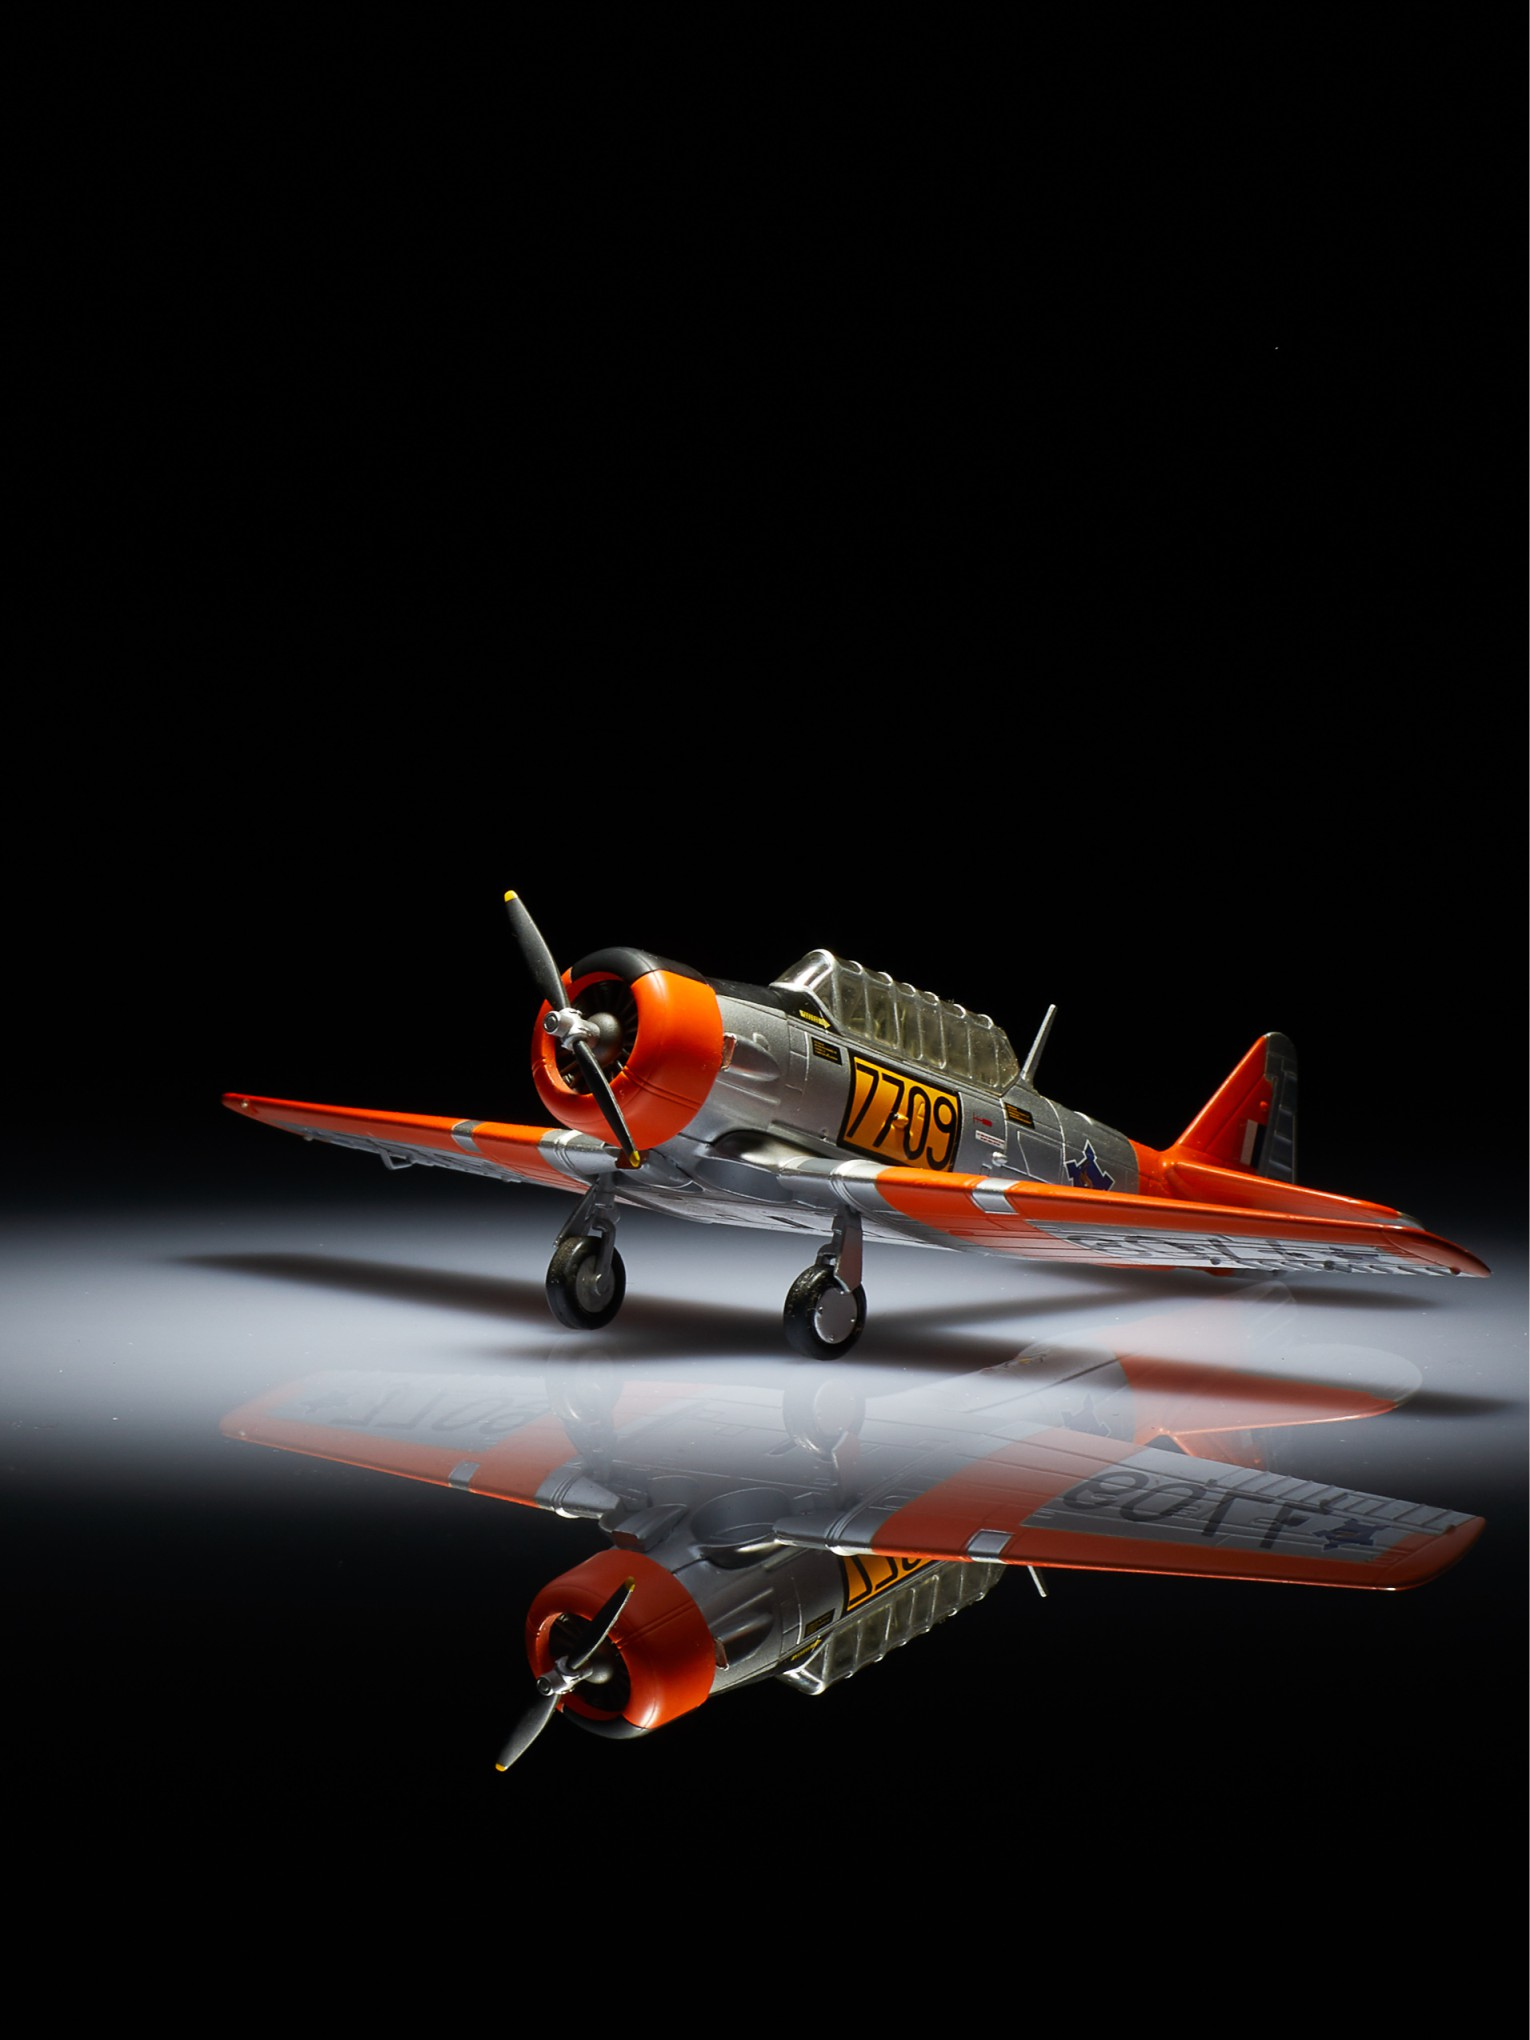 Harvard trainer model aircraft on reflective surface